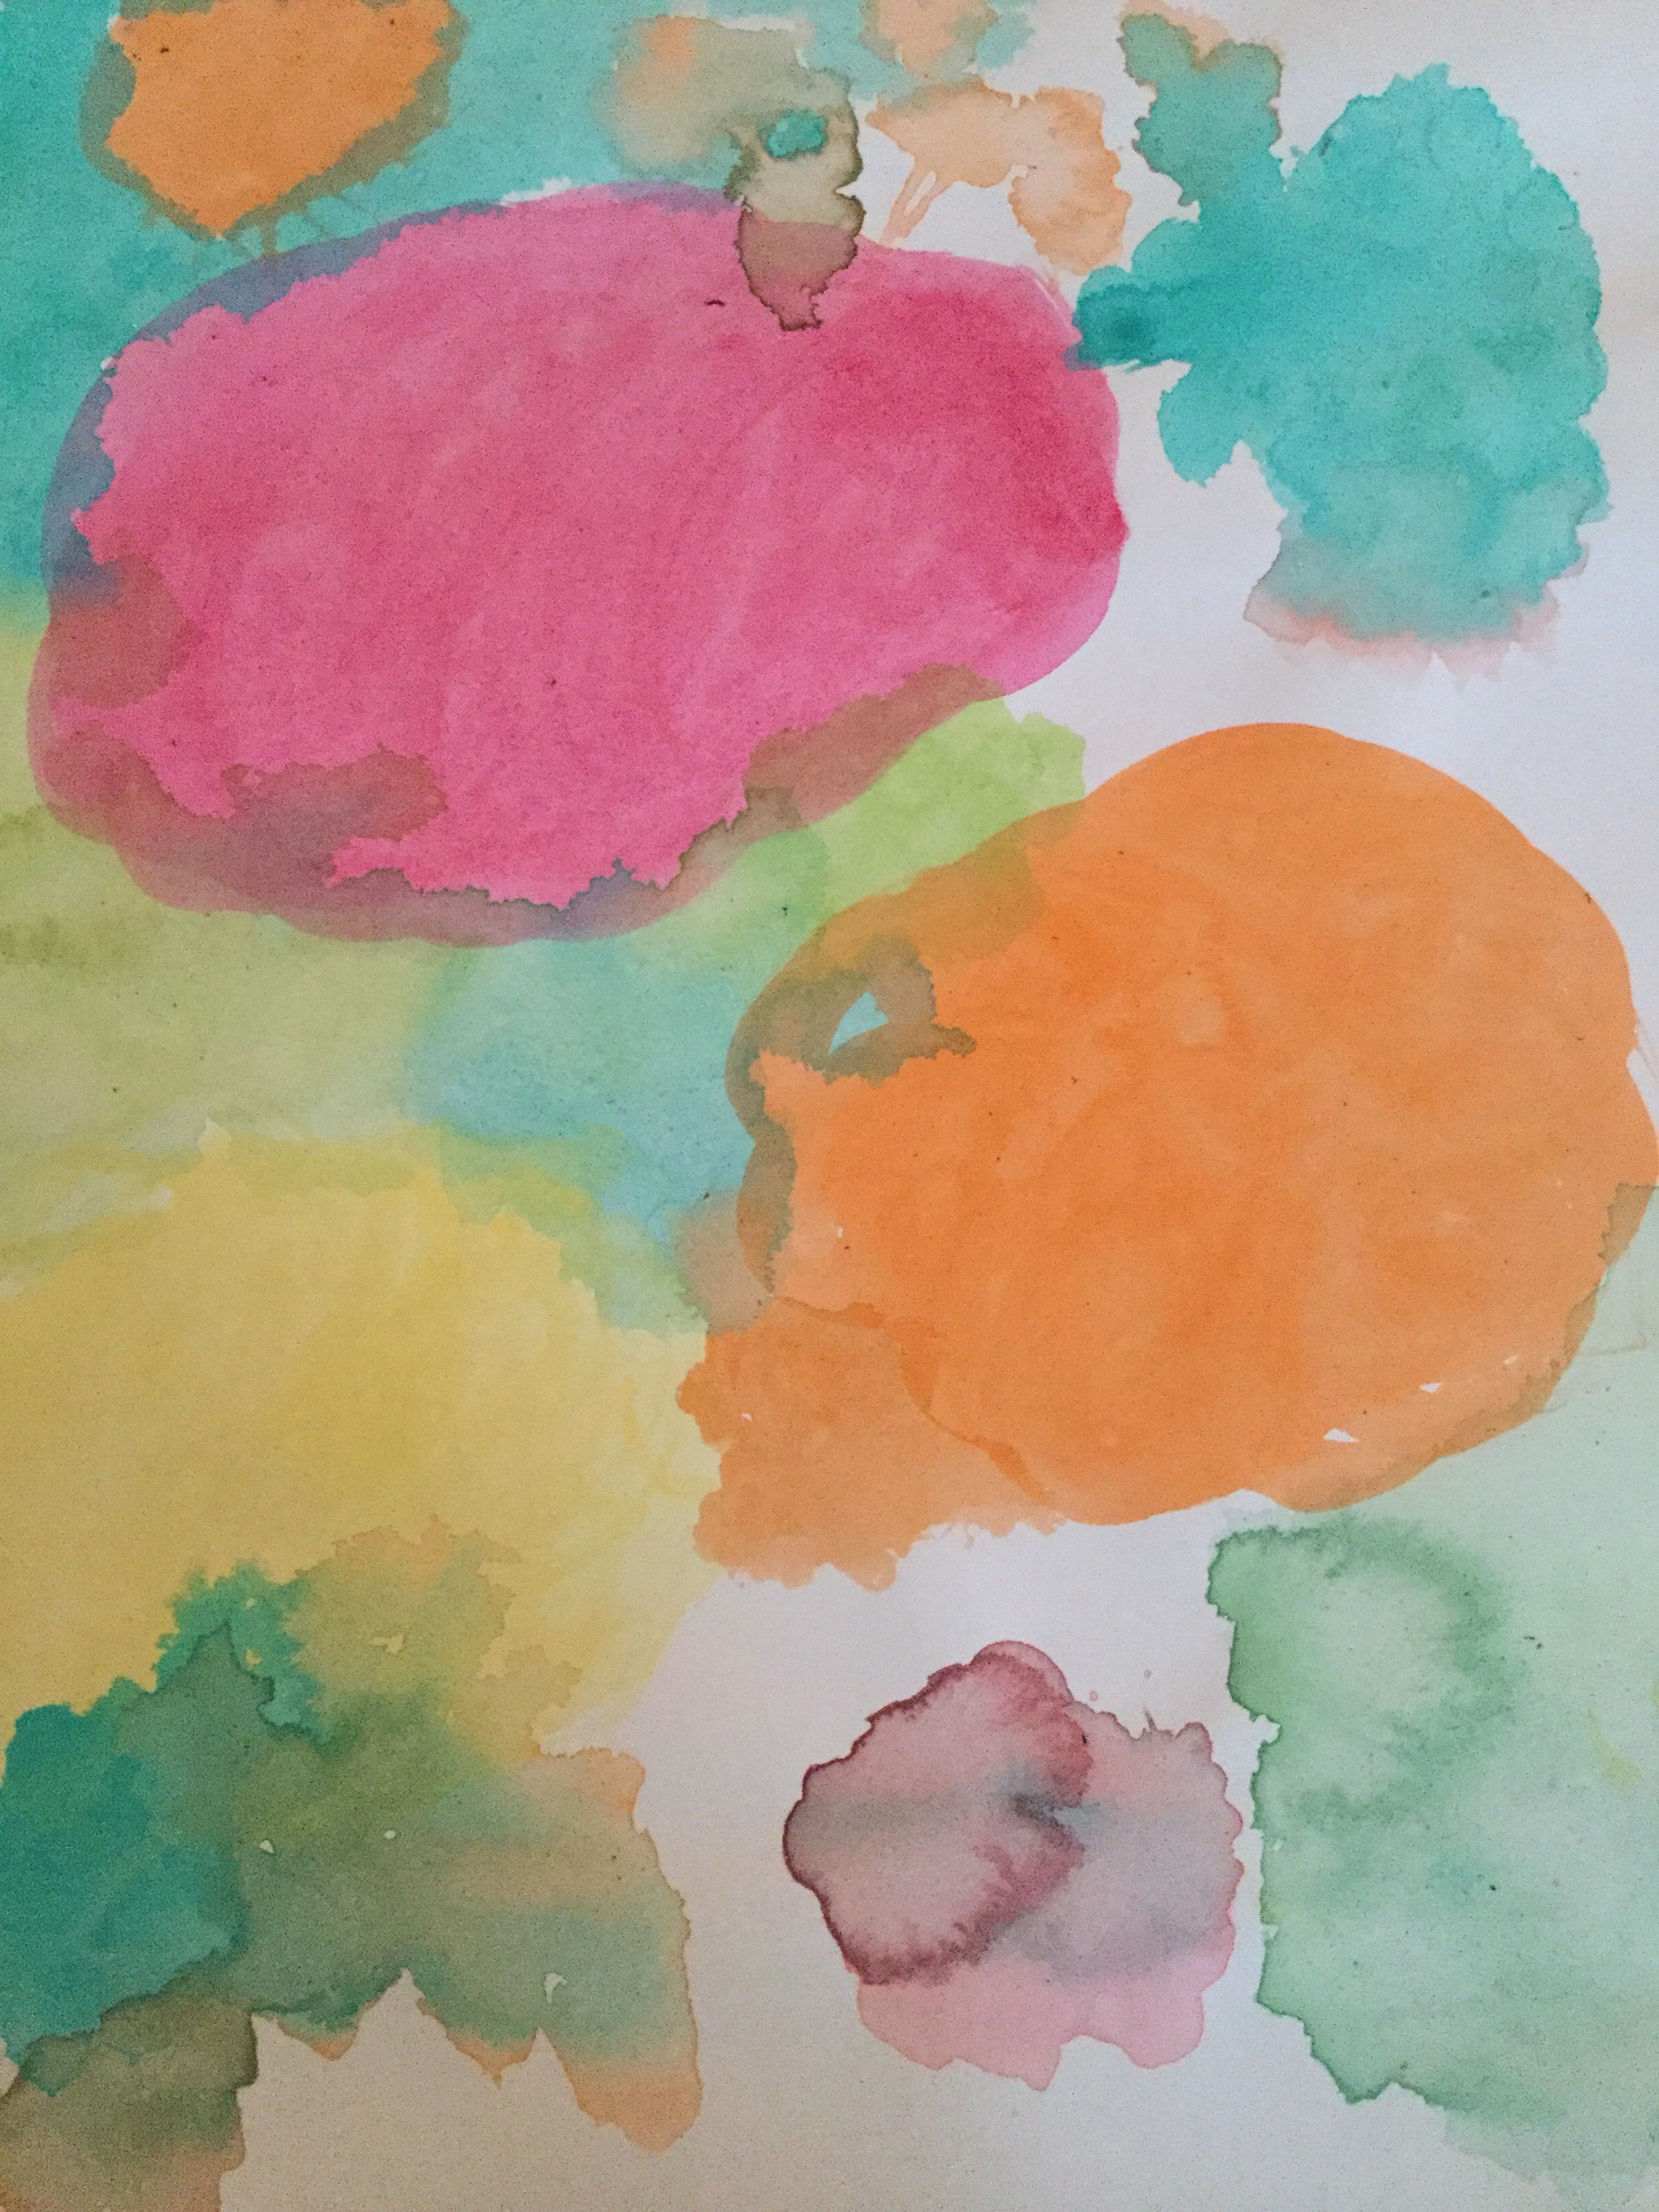 Watercolor Art I Just Used Acrylic Paint And Added Water